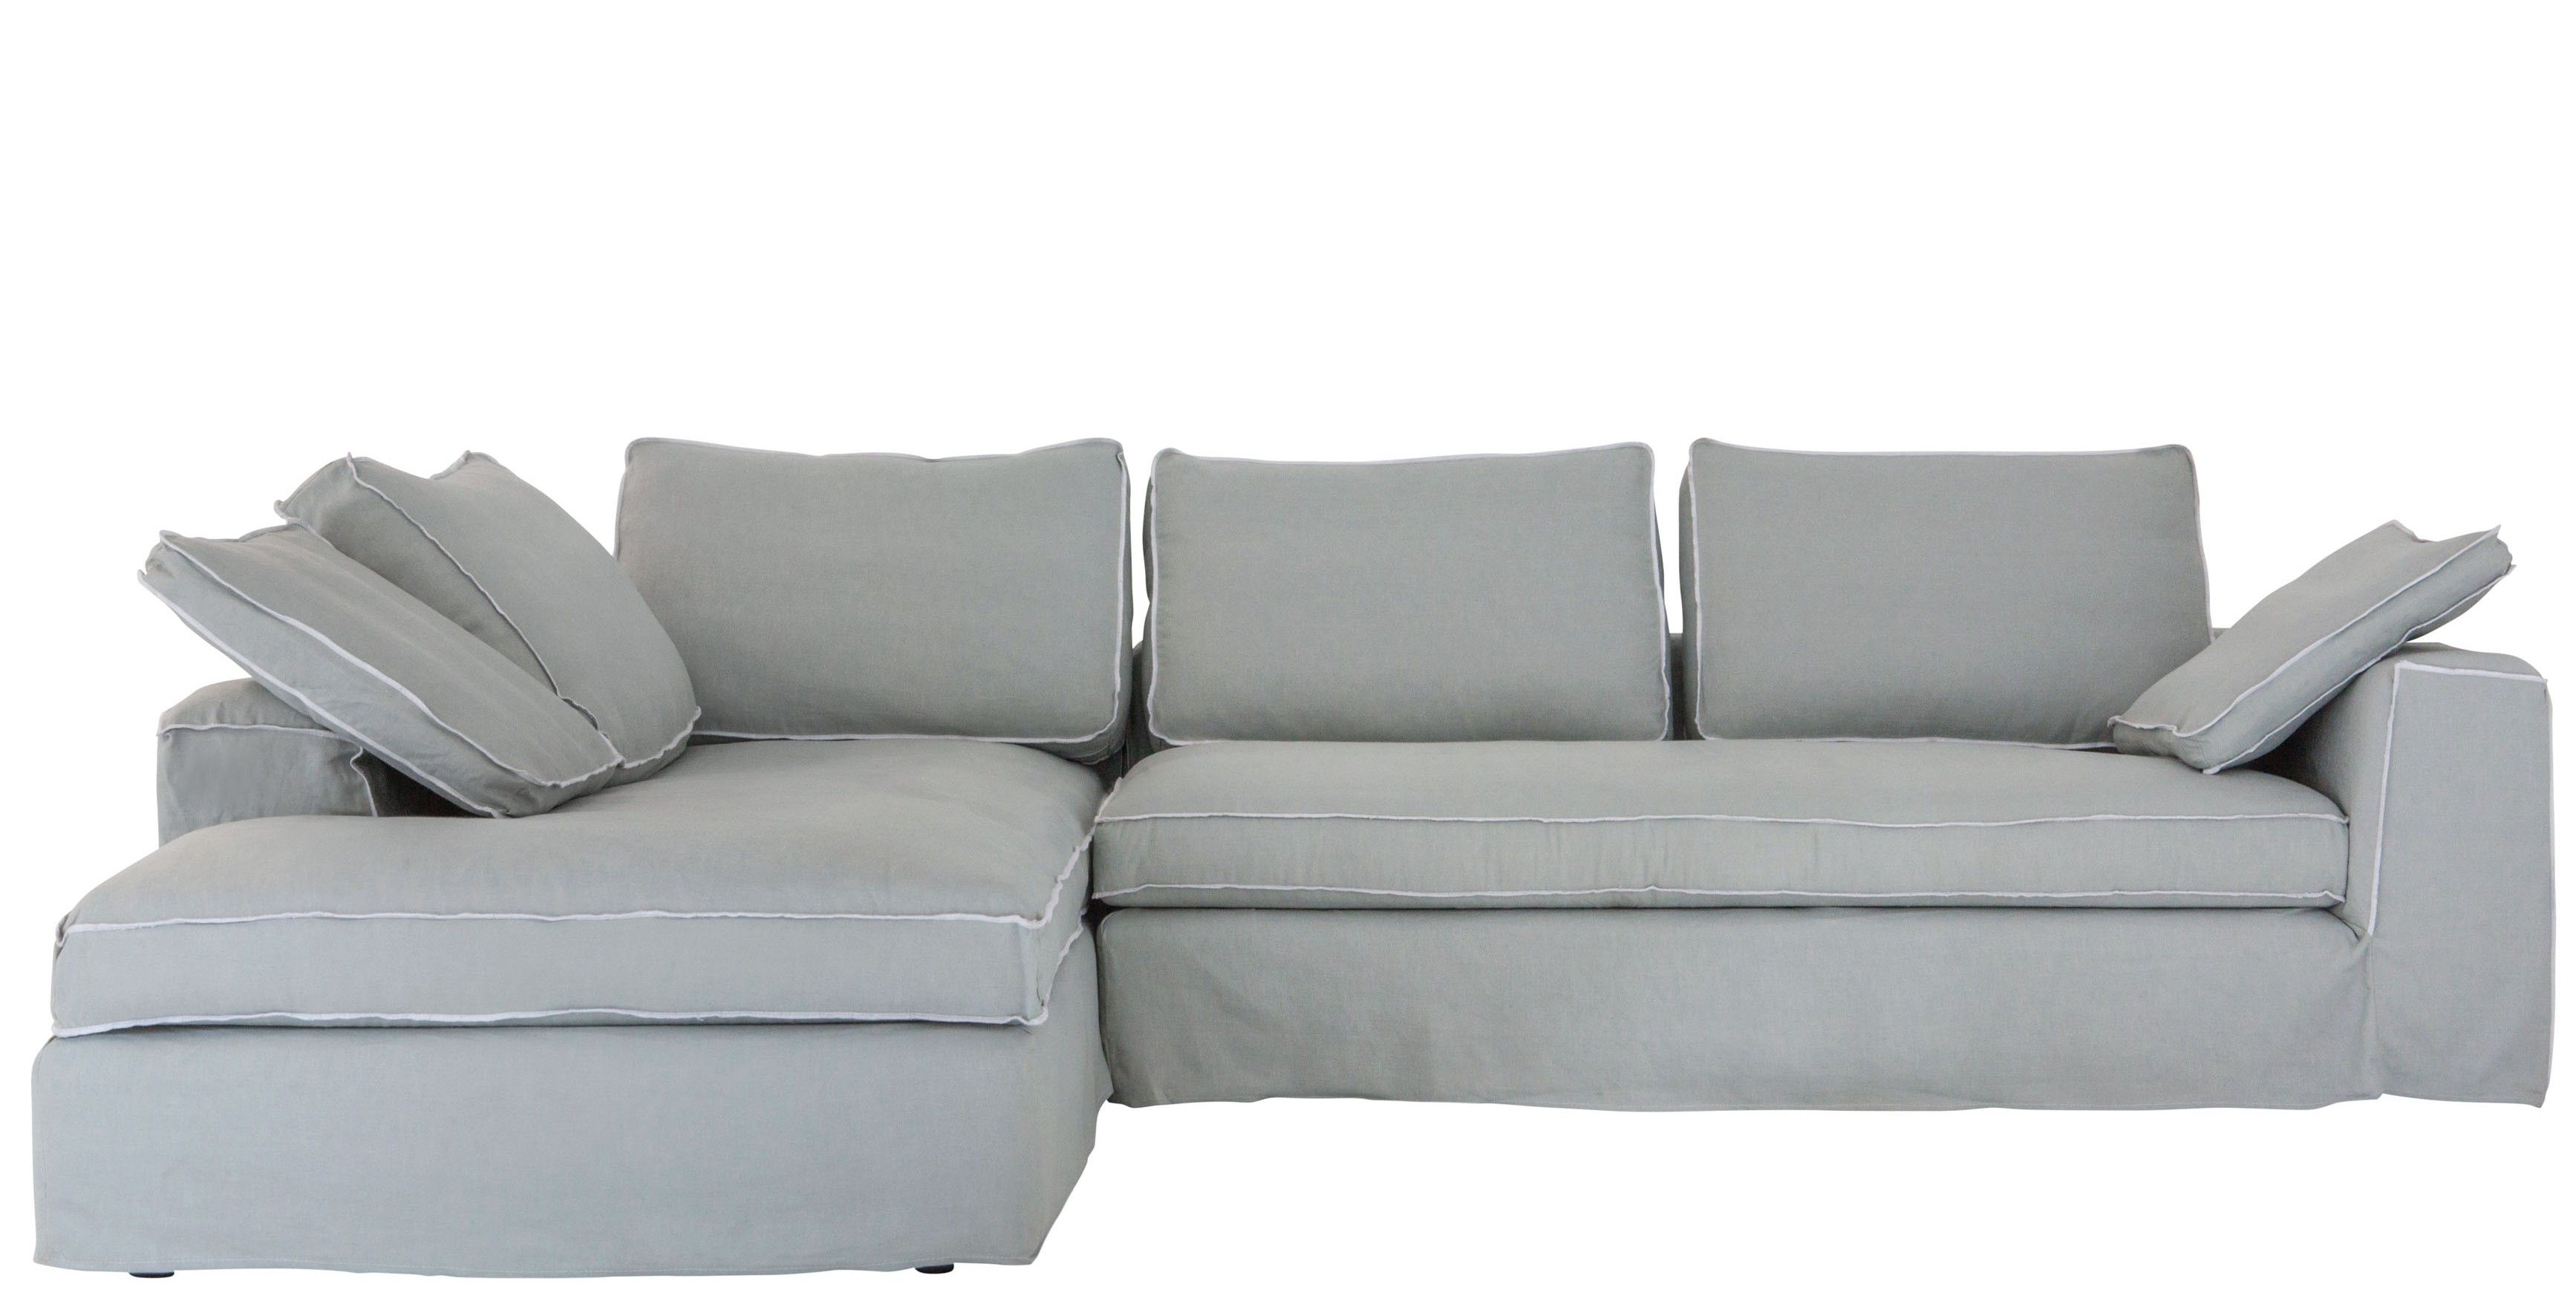 Sofas Furniture Weylandts South Africa Weylandts Lounge Suites Couch